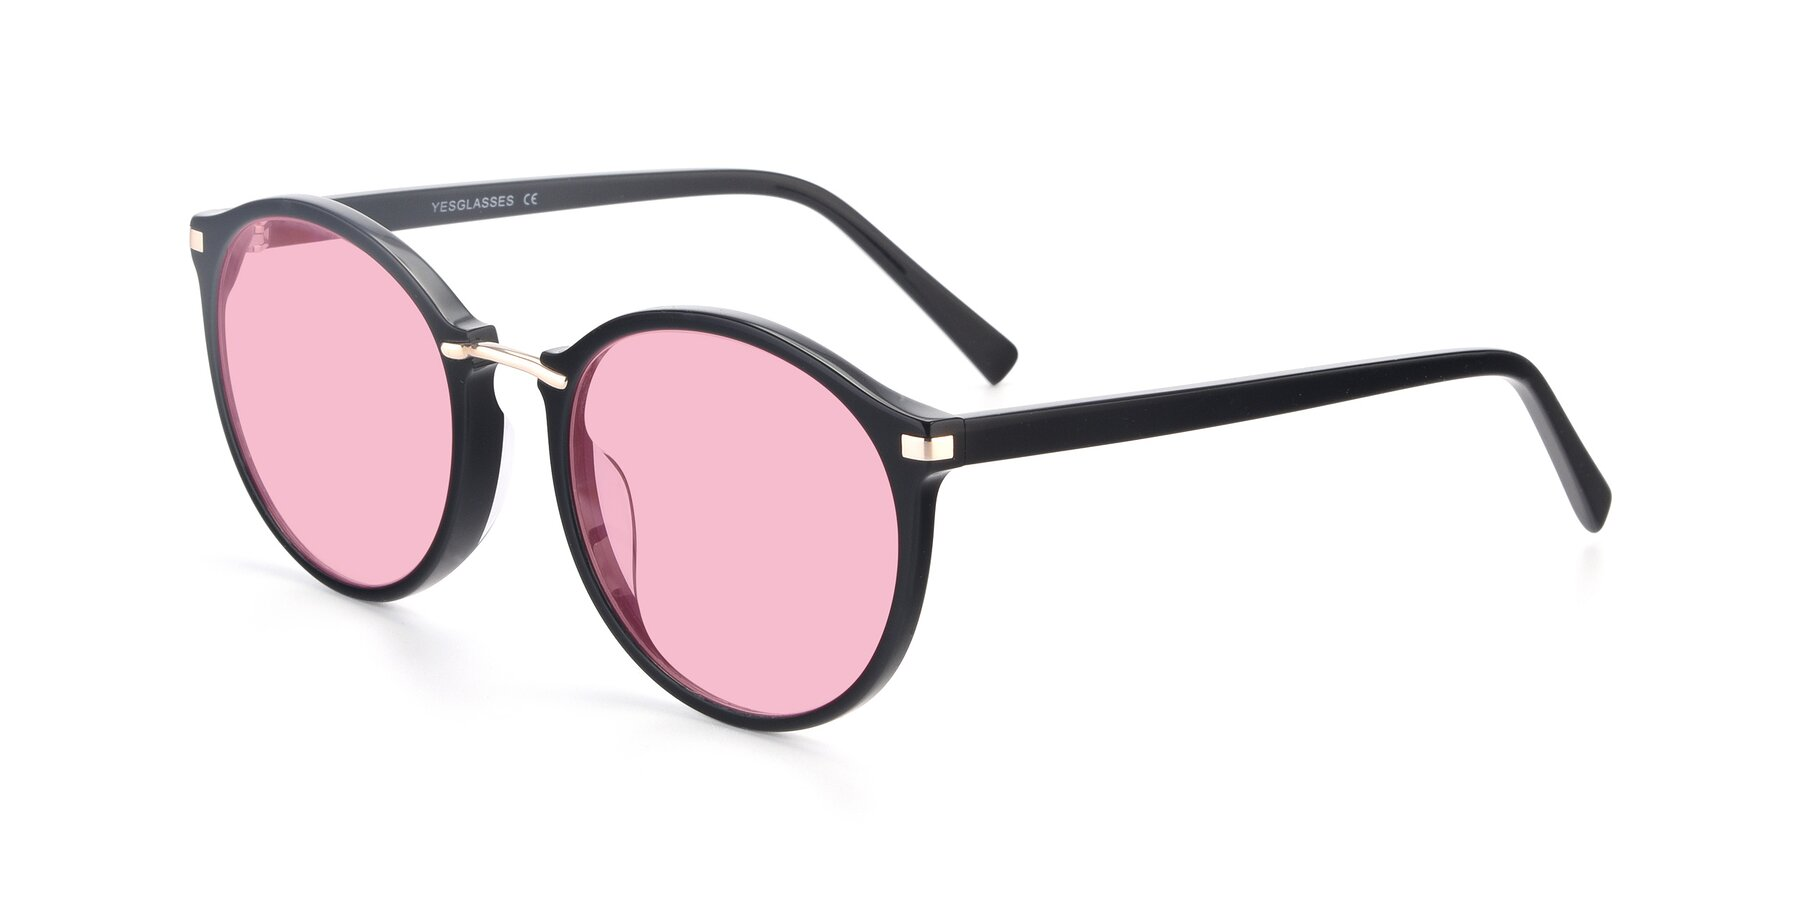 Angle of 17582 in Black with Medium Pink Tinted Lenses